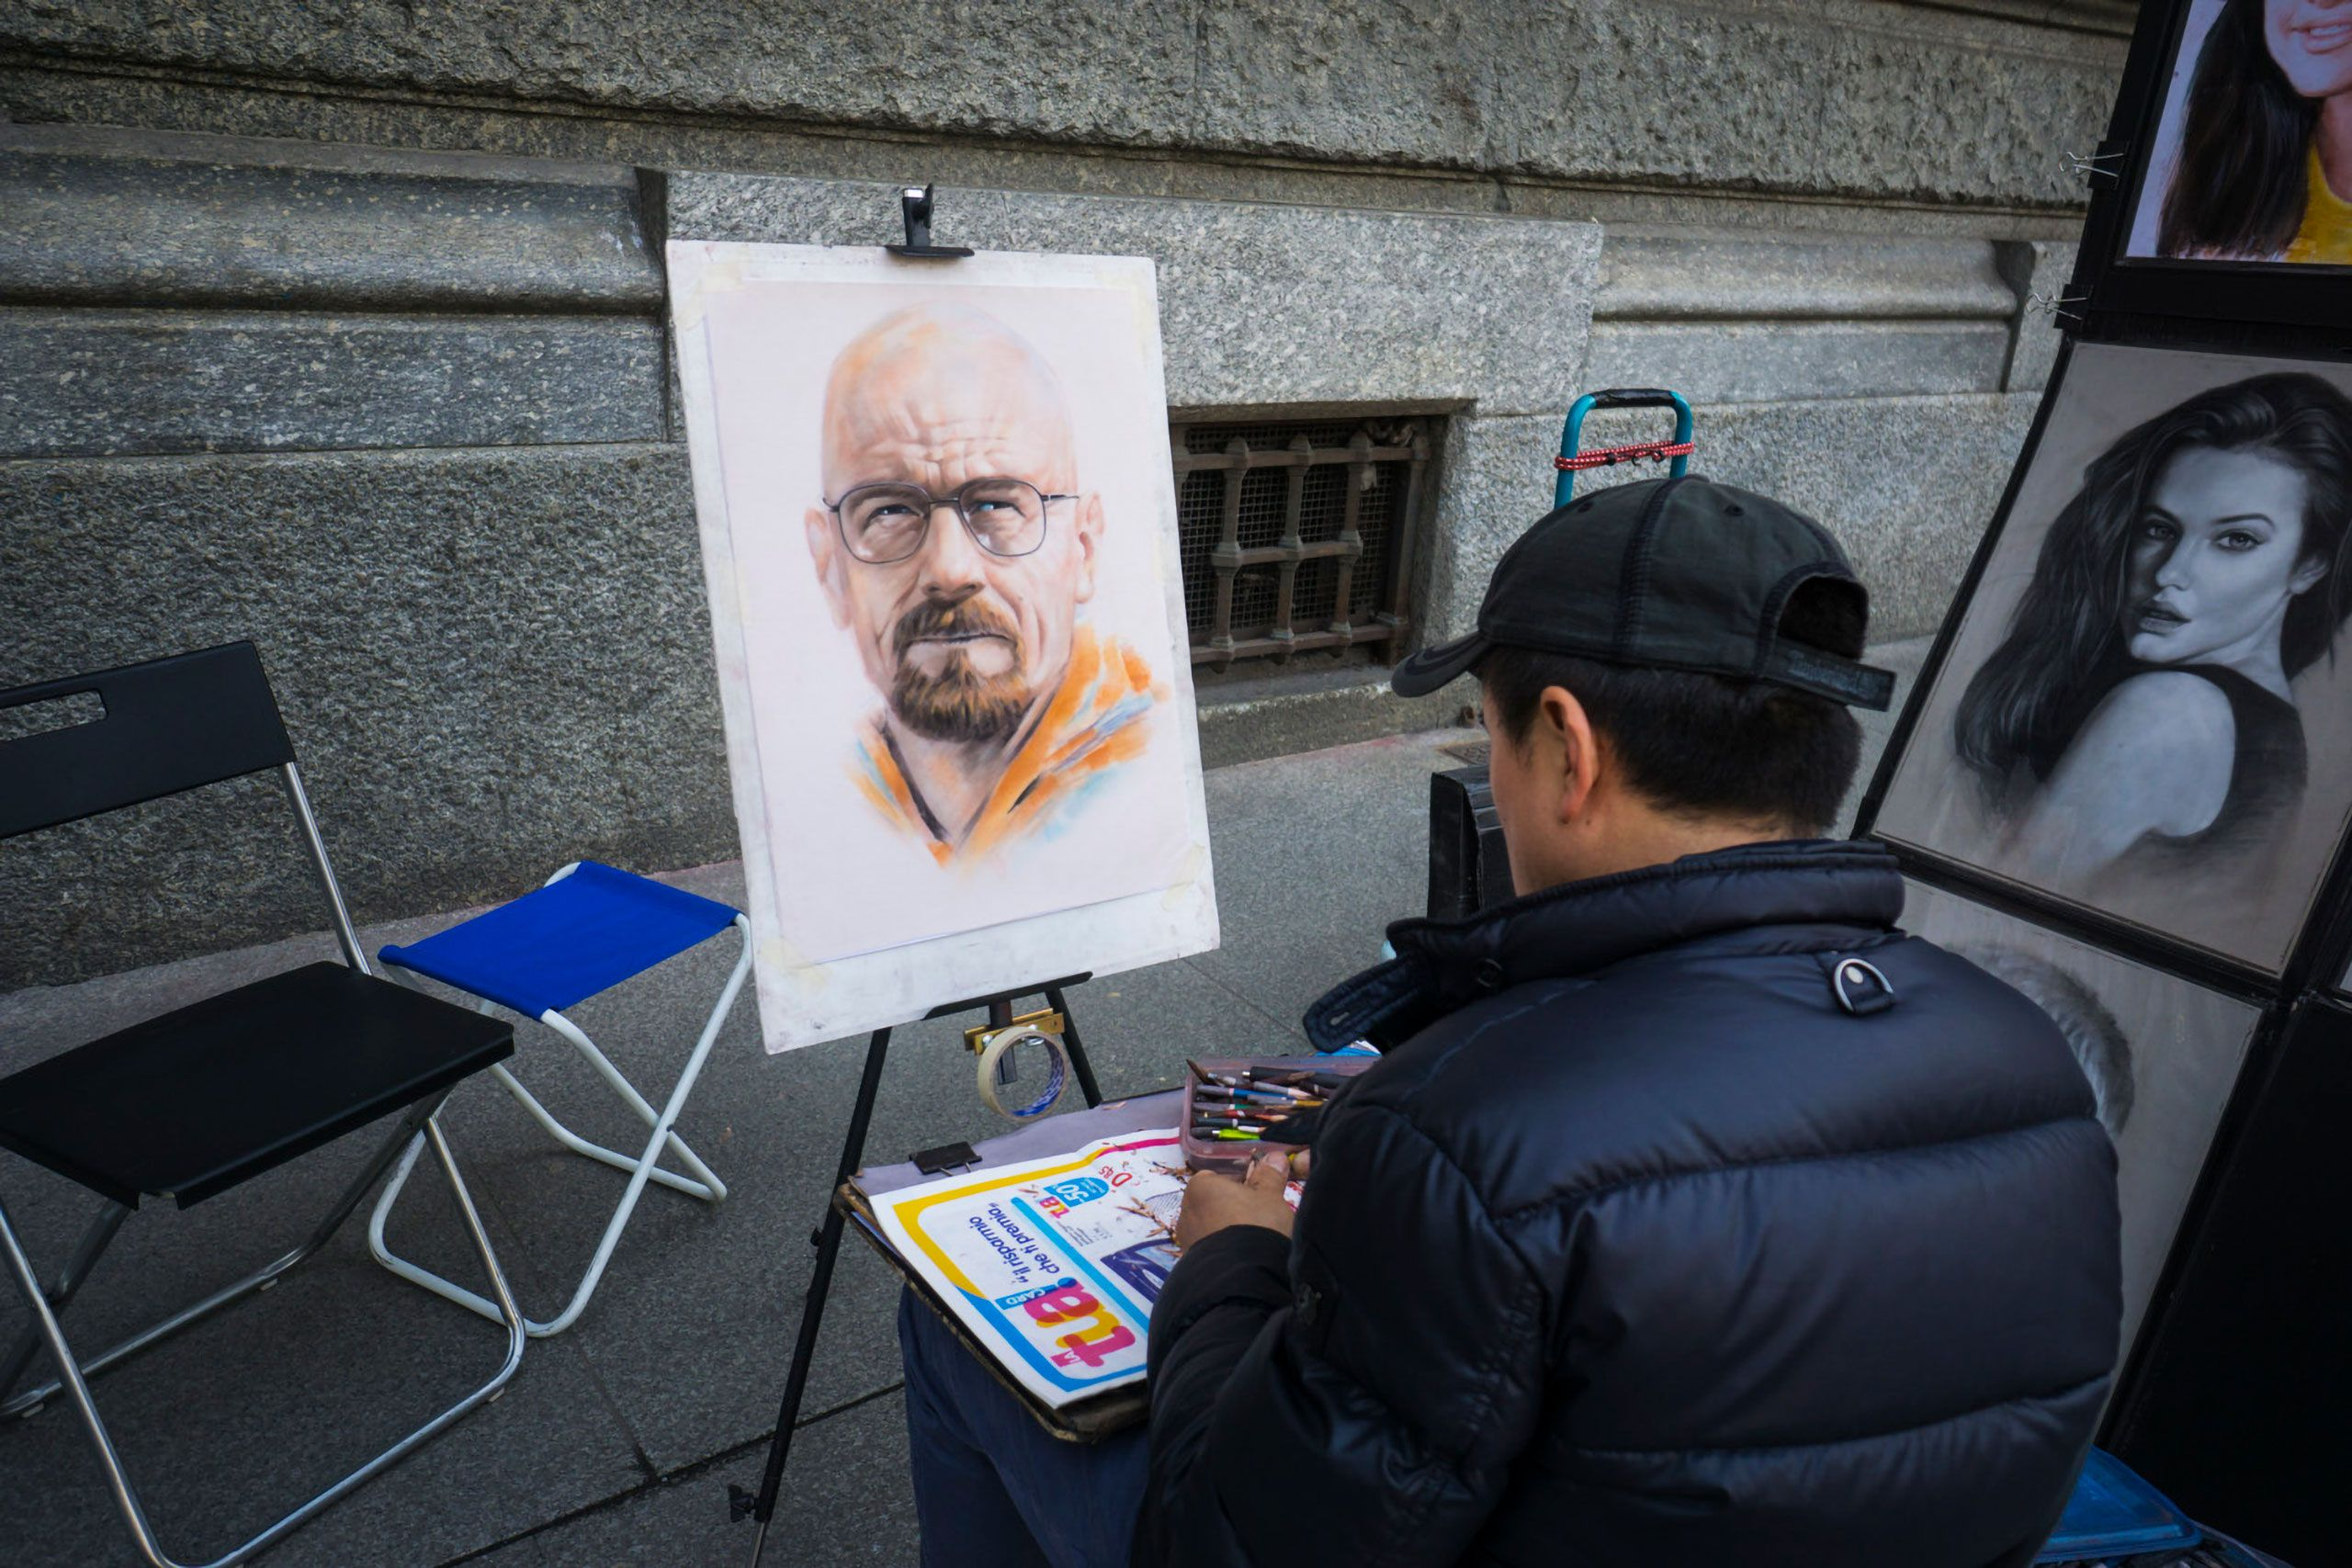 Bryan Cranston Breaking Bad promotions a street portrait artist in ROME inlay